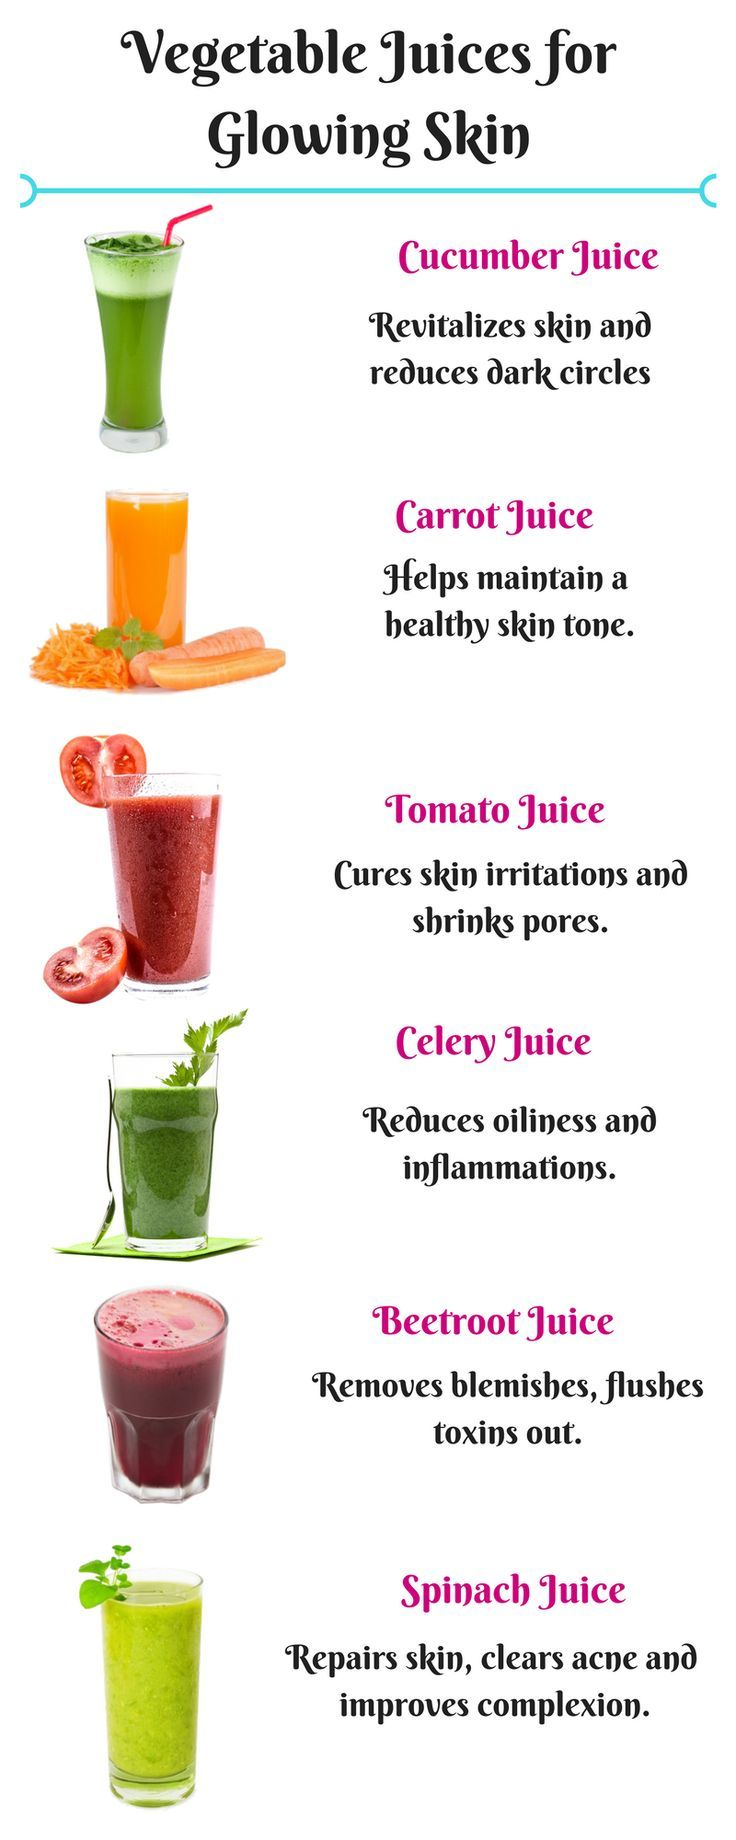 Vegetable juices for Glowing Skin